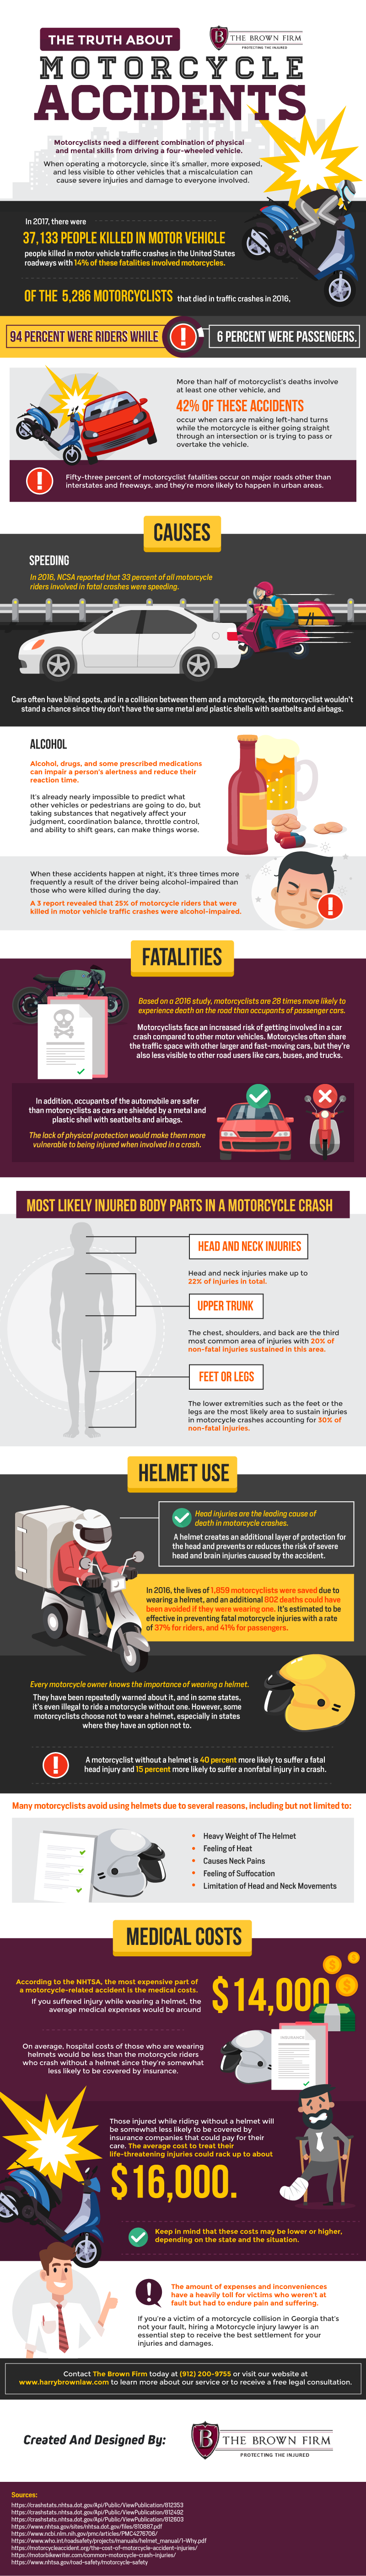 The Truth About Motorcycle Accidents - Infographic